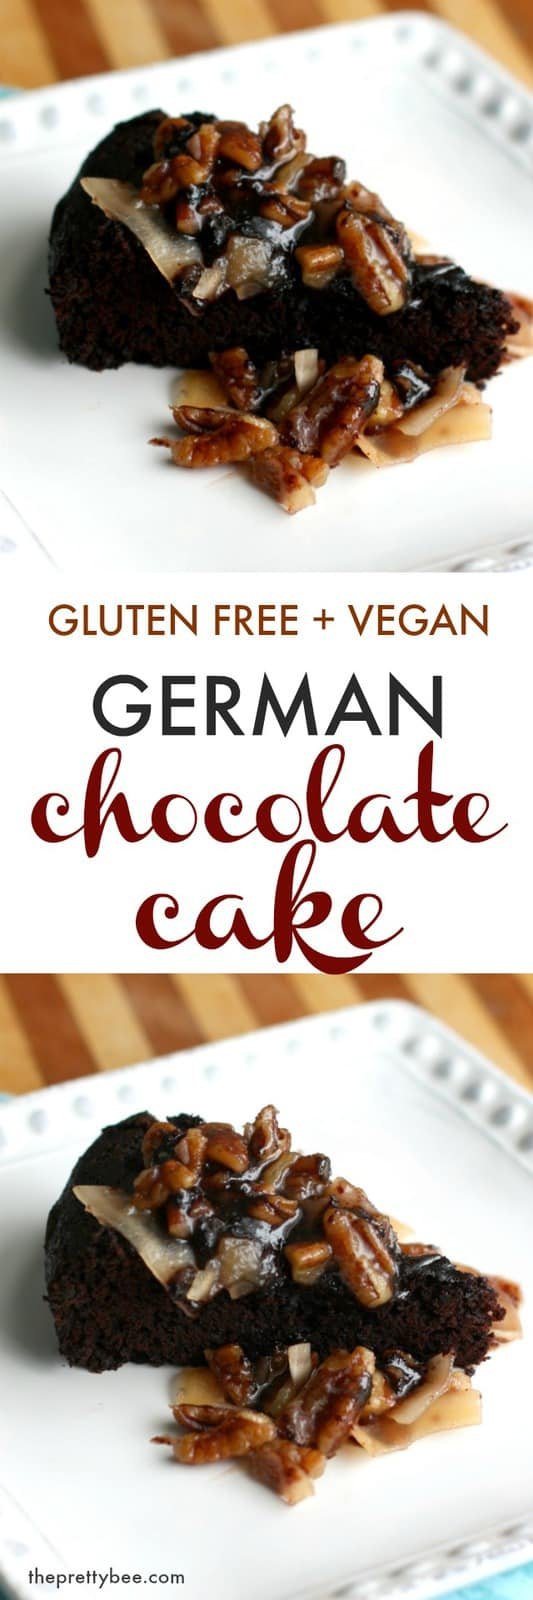 Decadent German chocolate cake that's vegan and gluten free! Such a delicious dessert for a special occasion!